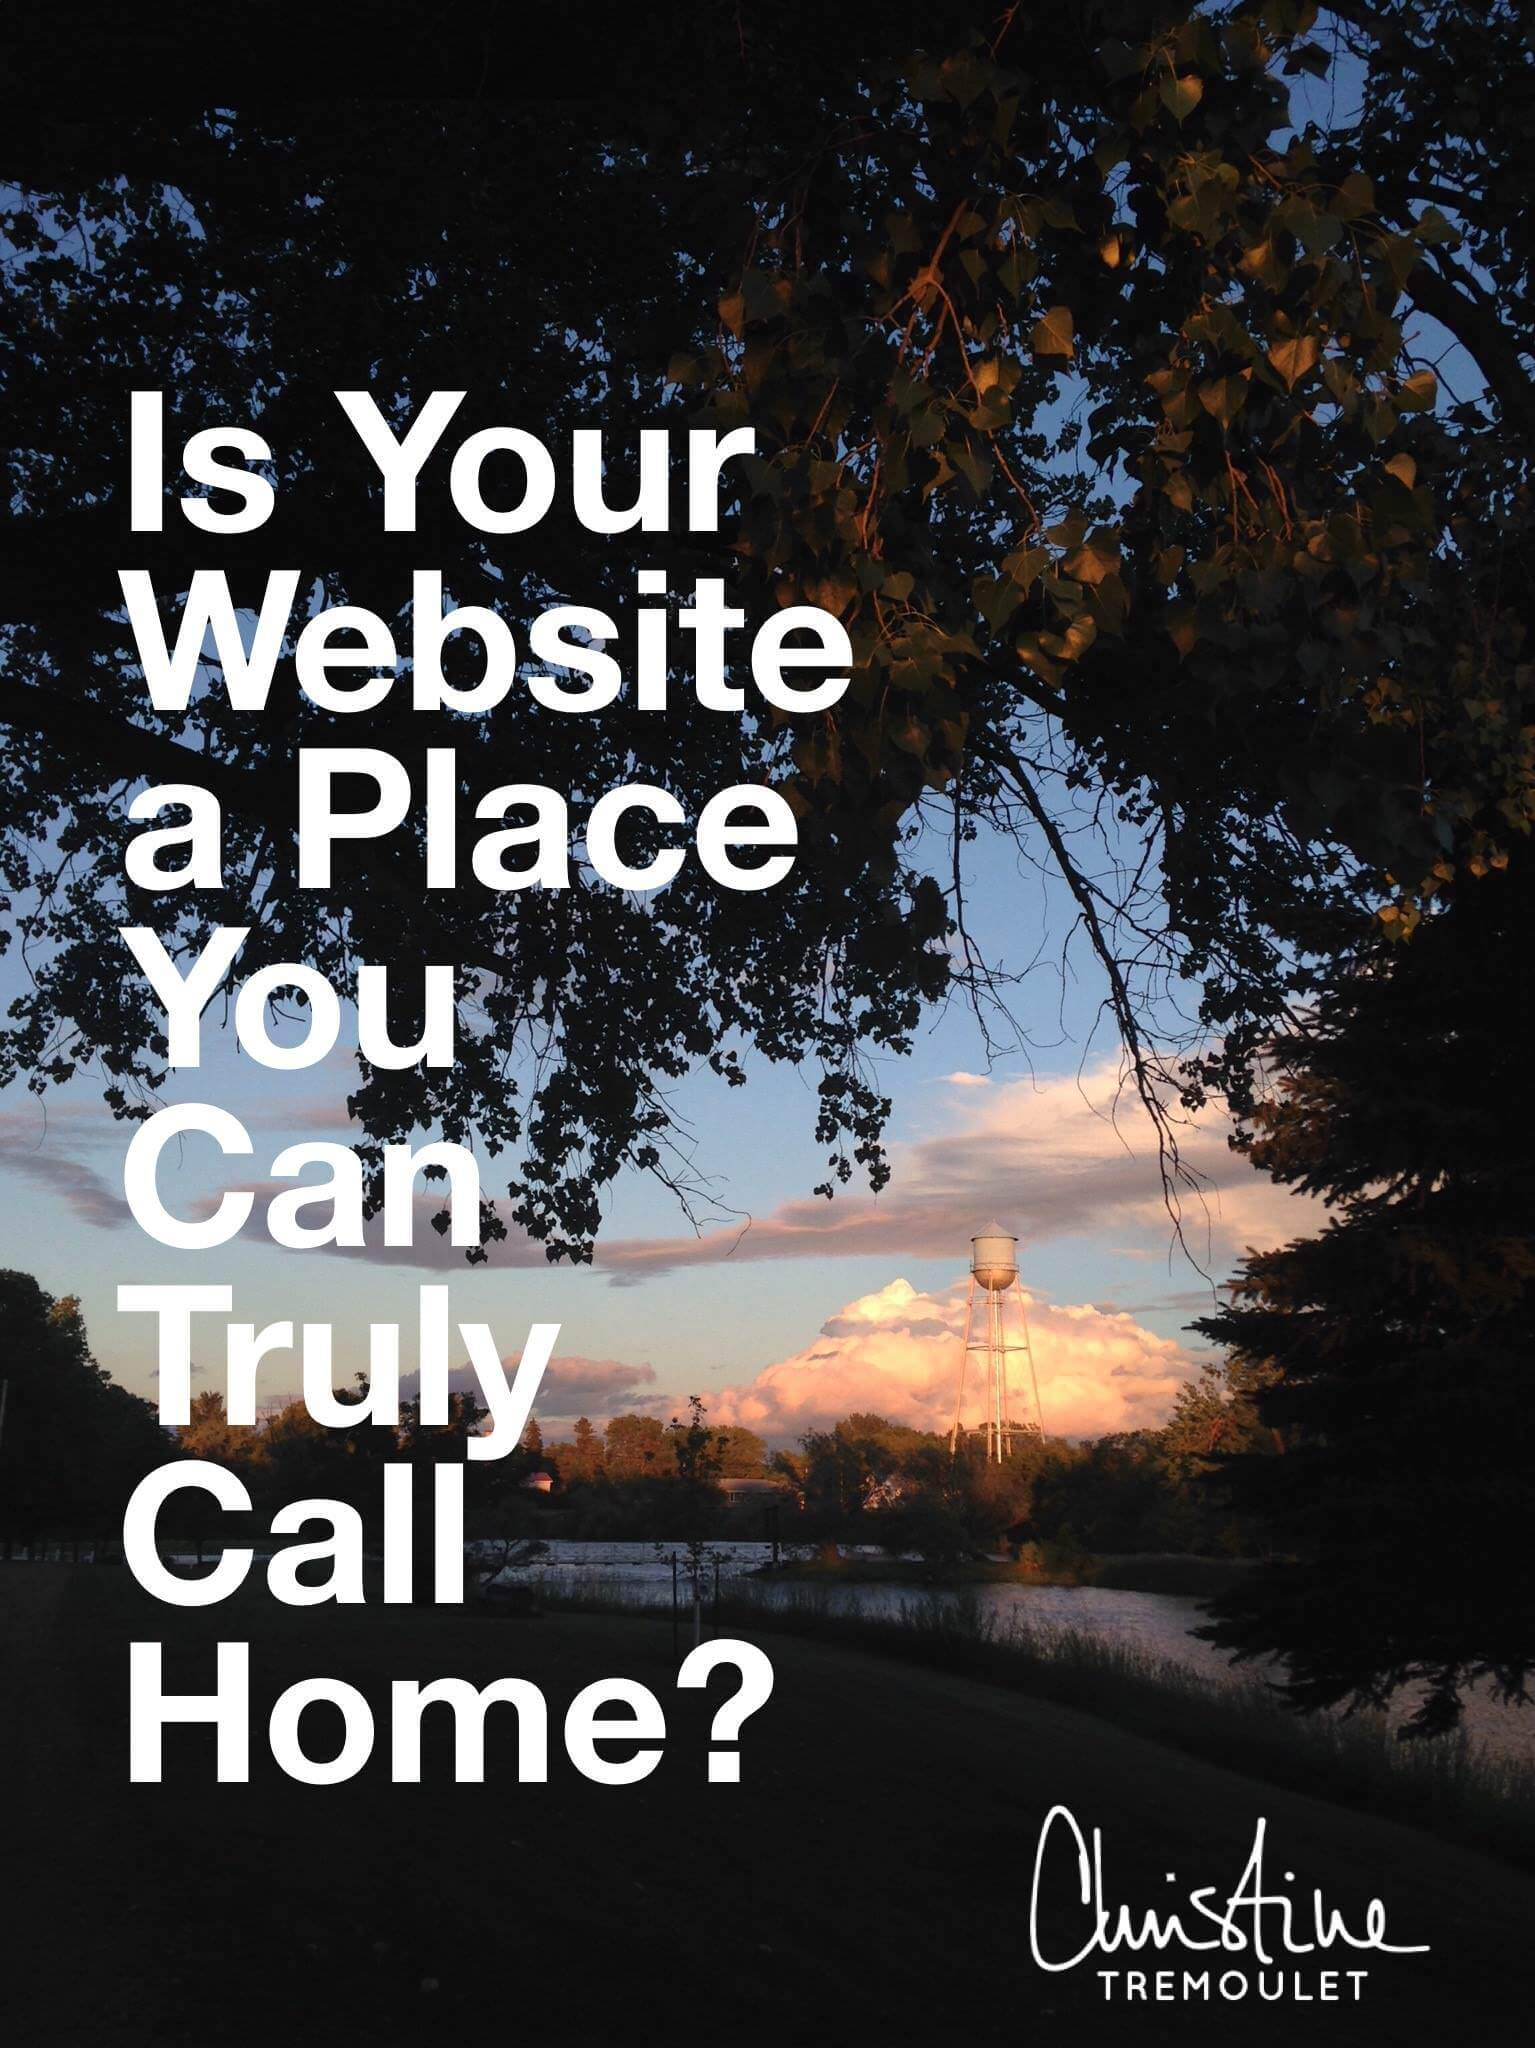 Is your website a place you can truly call home? Time to make it one! New on https://christinetremoulet.com